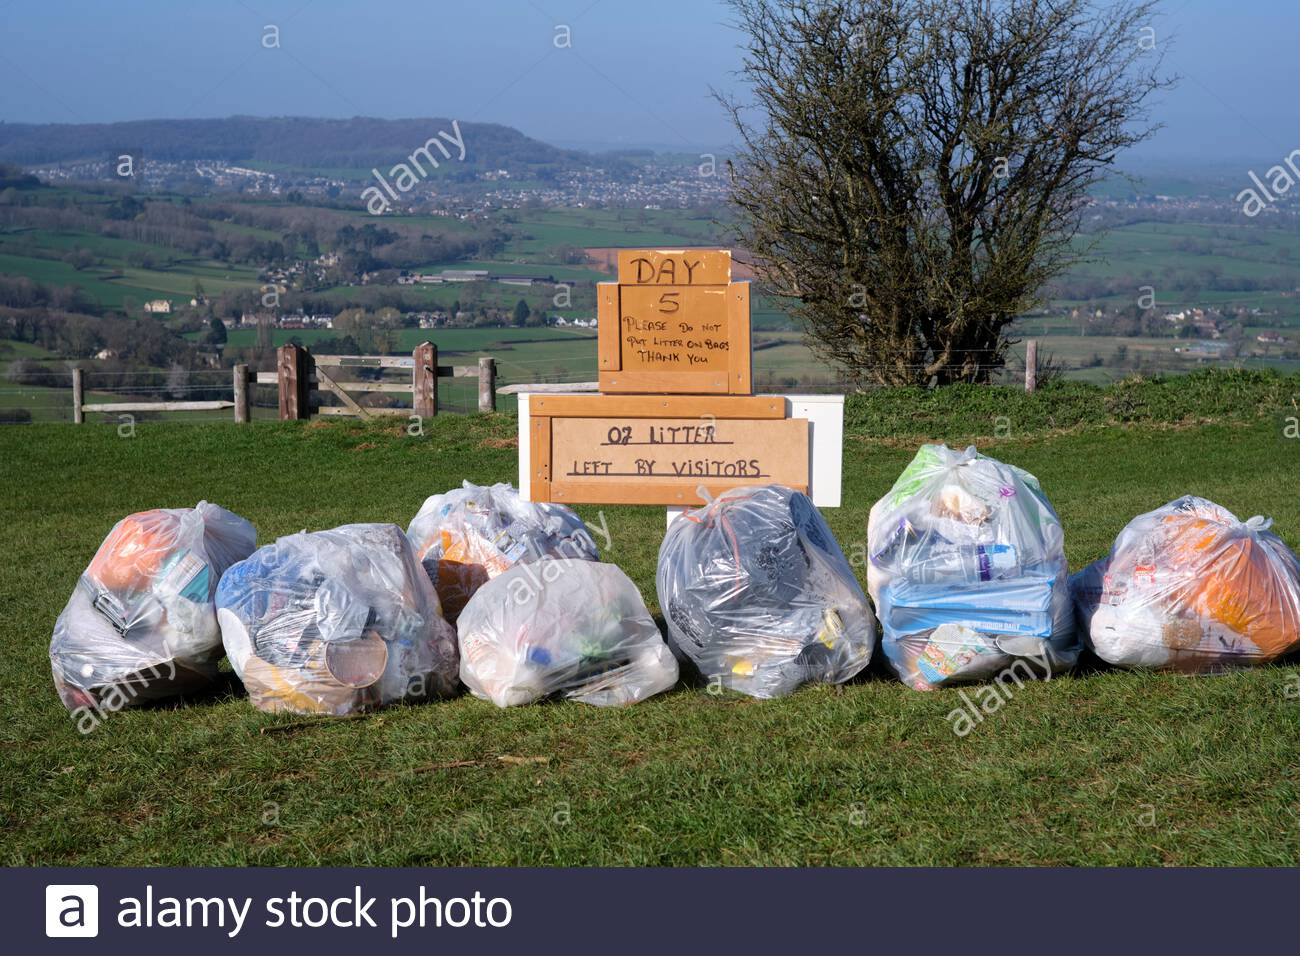 day-5-of-litter-left-by-visitors-rubbish-collected-by-local-volunteer-sign-at-coaley-peak-viewpoint-on-cotswold-edge-in-gloucestershire-uk-2F73C1H.jpg